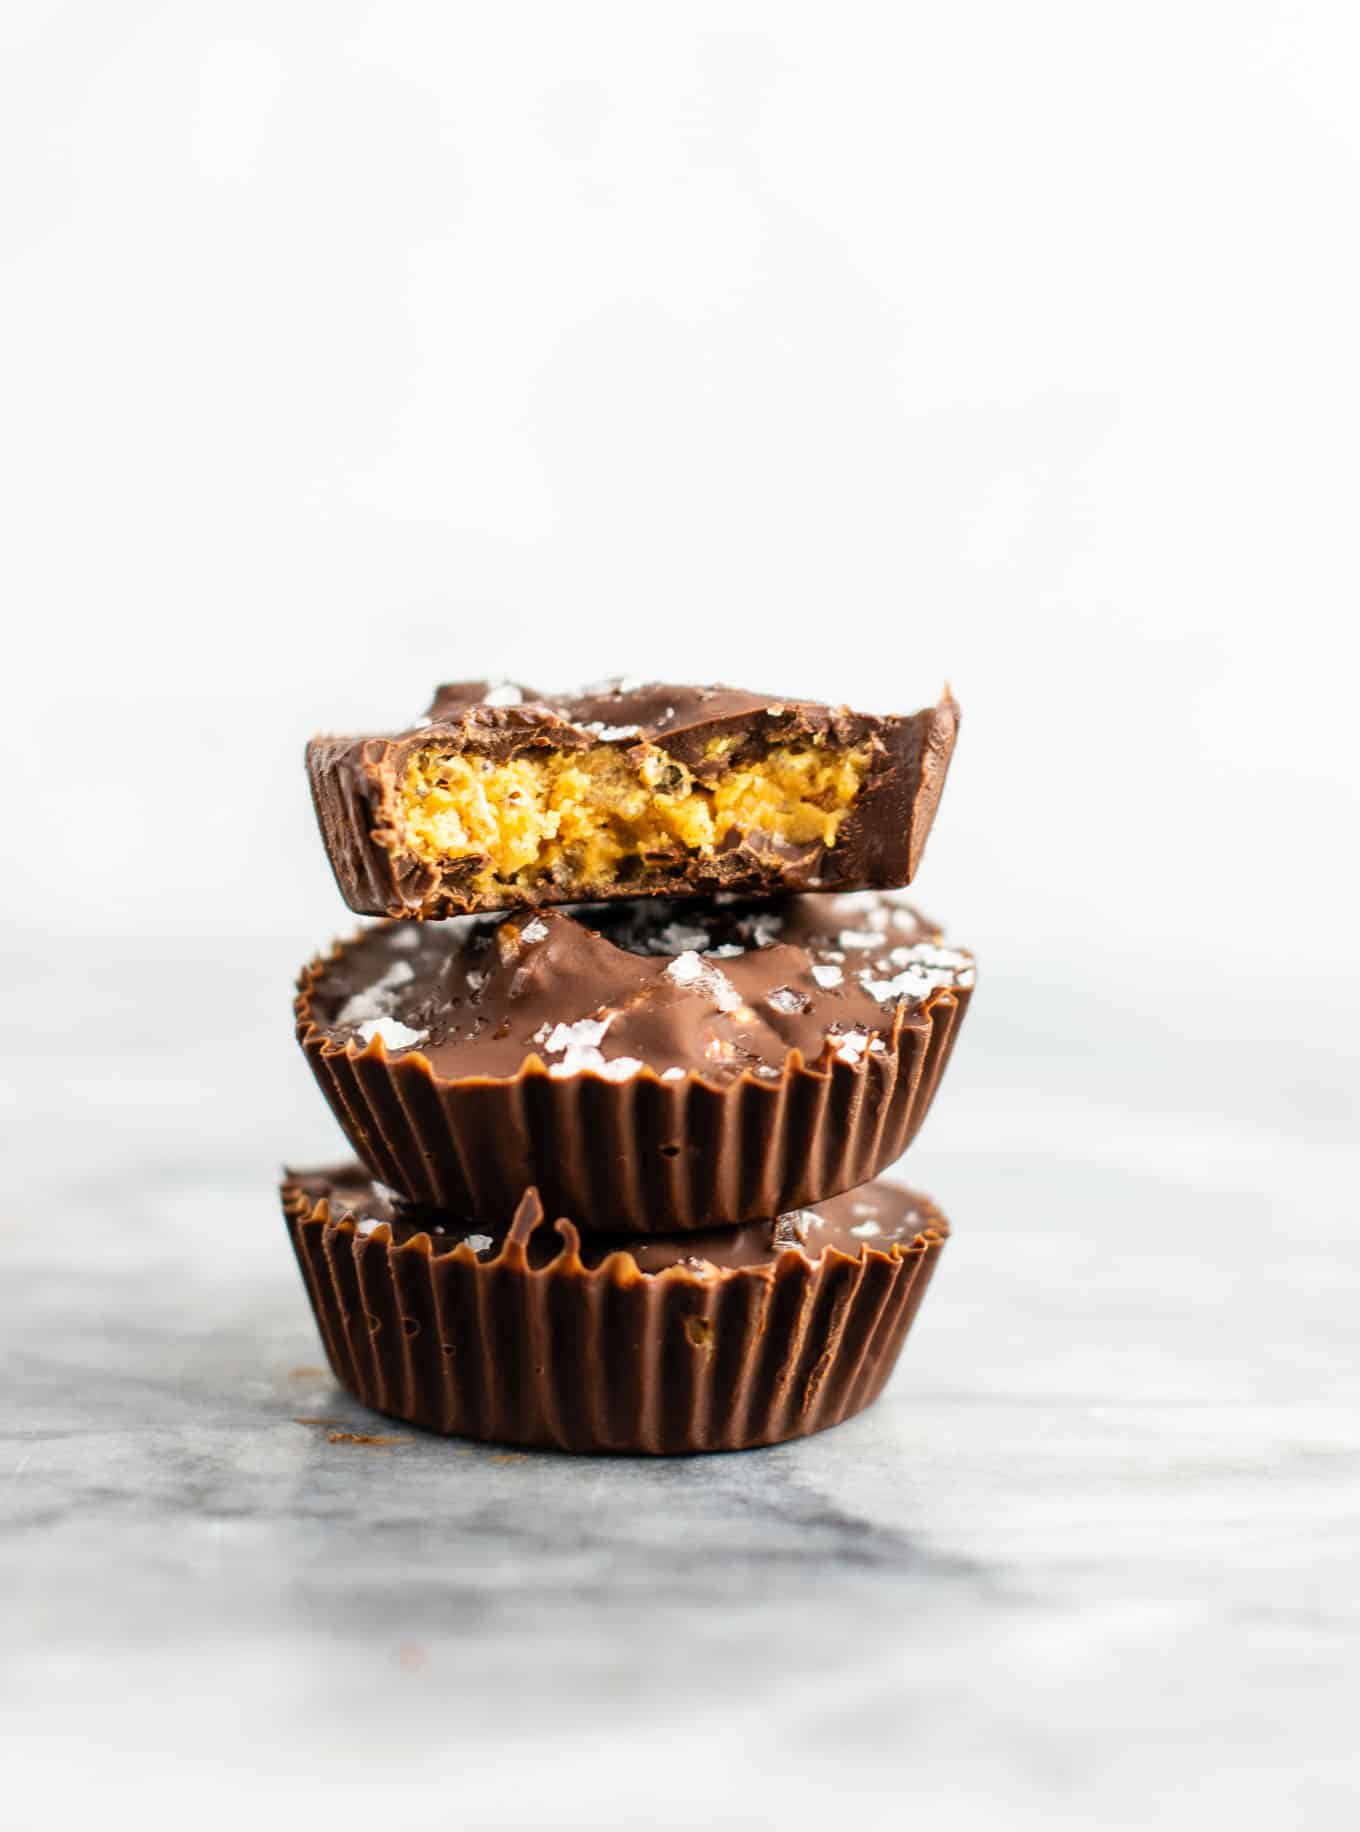 Chocolate peanut butter crunch cups with flaked sea salt – these are next level DELICIOUS! Vegan, gluten free, and tastes so good you won't want to share! Perfect treat to keep in the freezer! #vegan #glutenfree #dessert #reesescups #vegandessert #glutenfreedessert #christmas #holidaytreat #seasalt